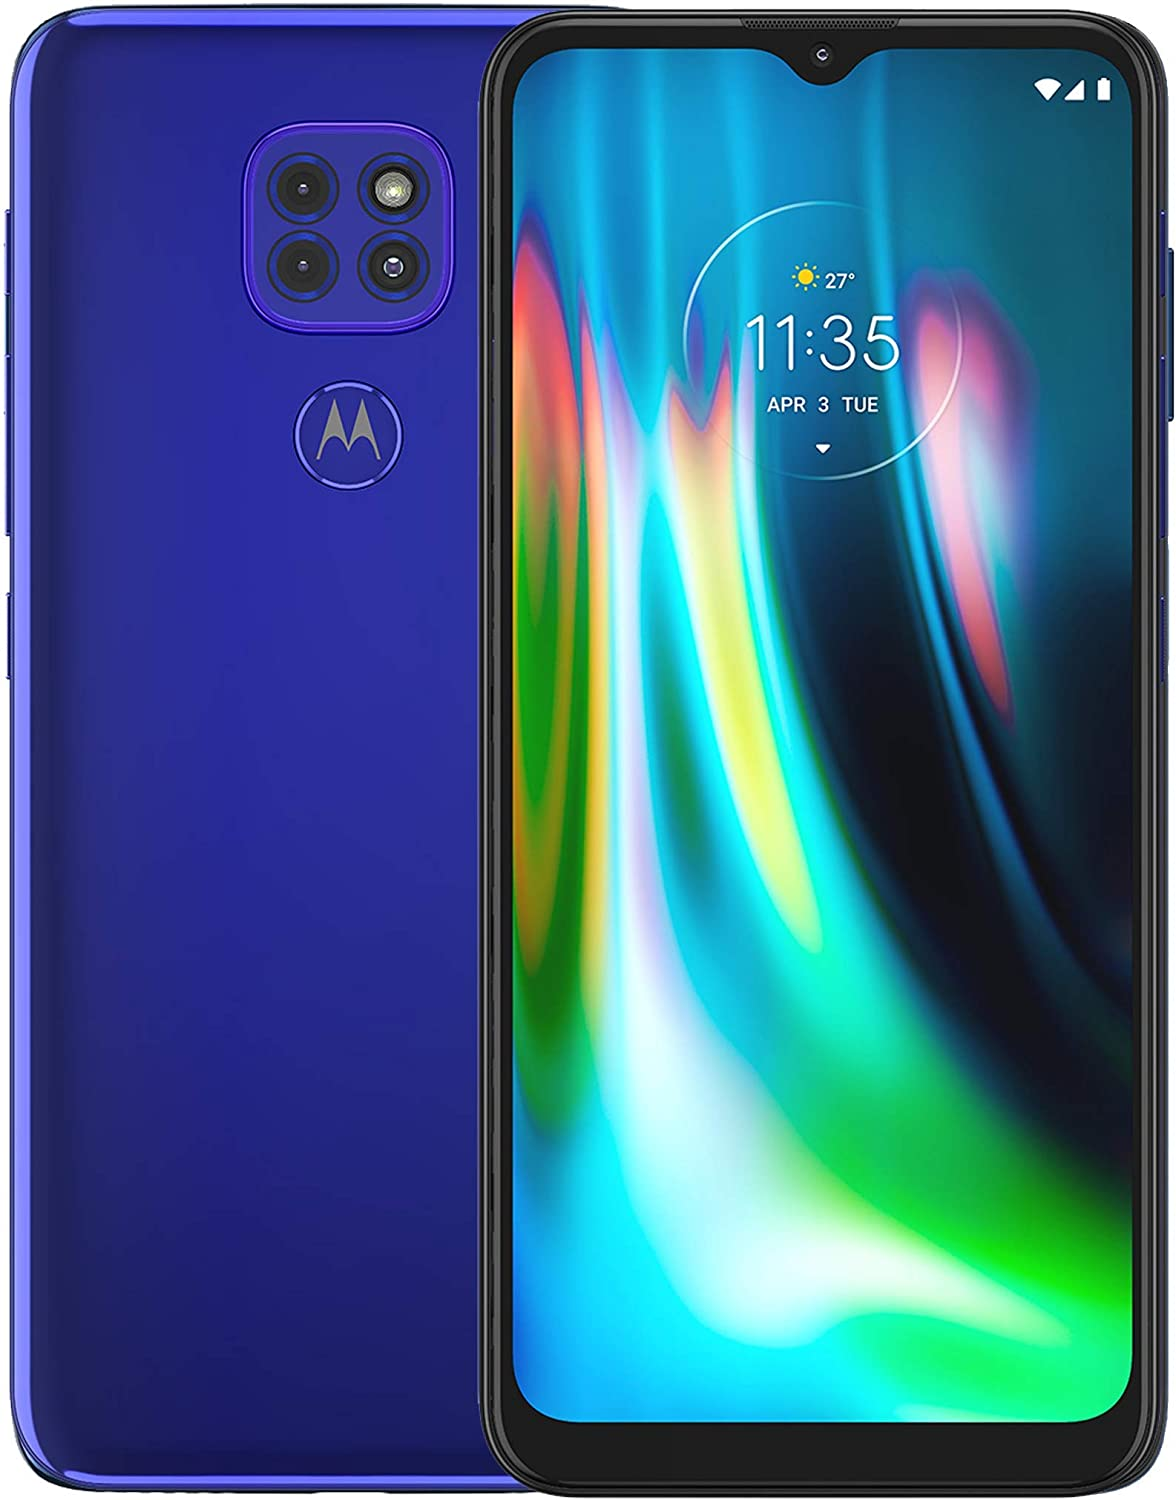 Motorola Moto G9 Play | Unlocked | International GSM Only | 4/64GB | 48MP Camera | 2020 | Sapphire Blue | NOT Compatible with Sprint or Verizon